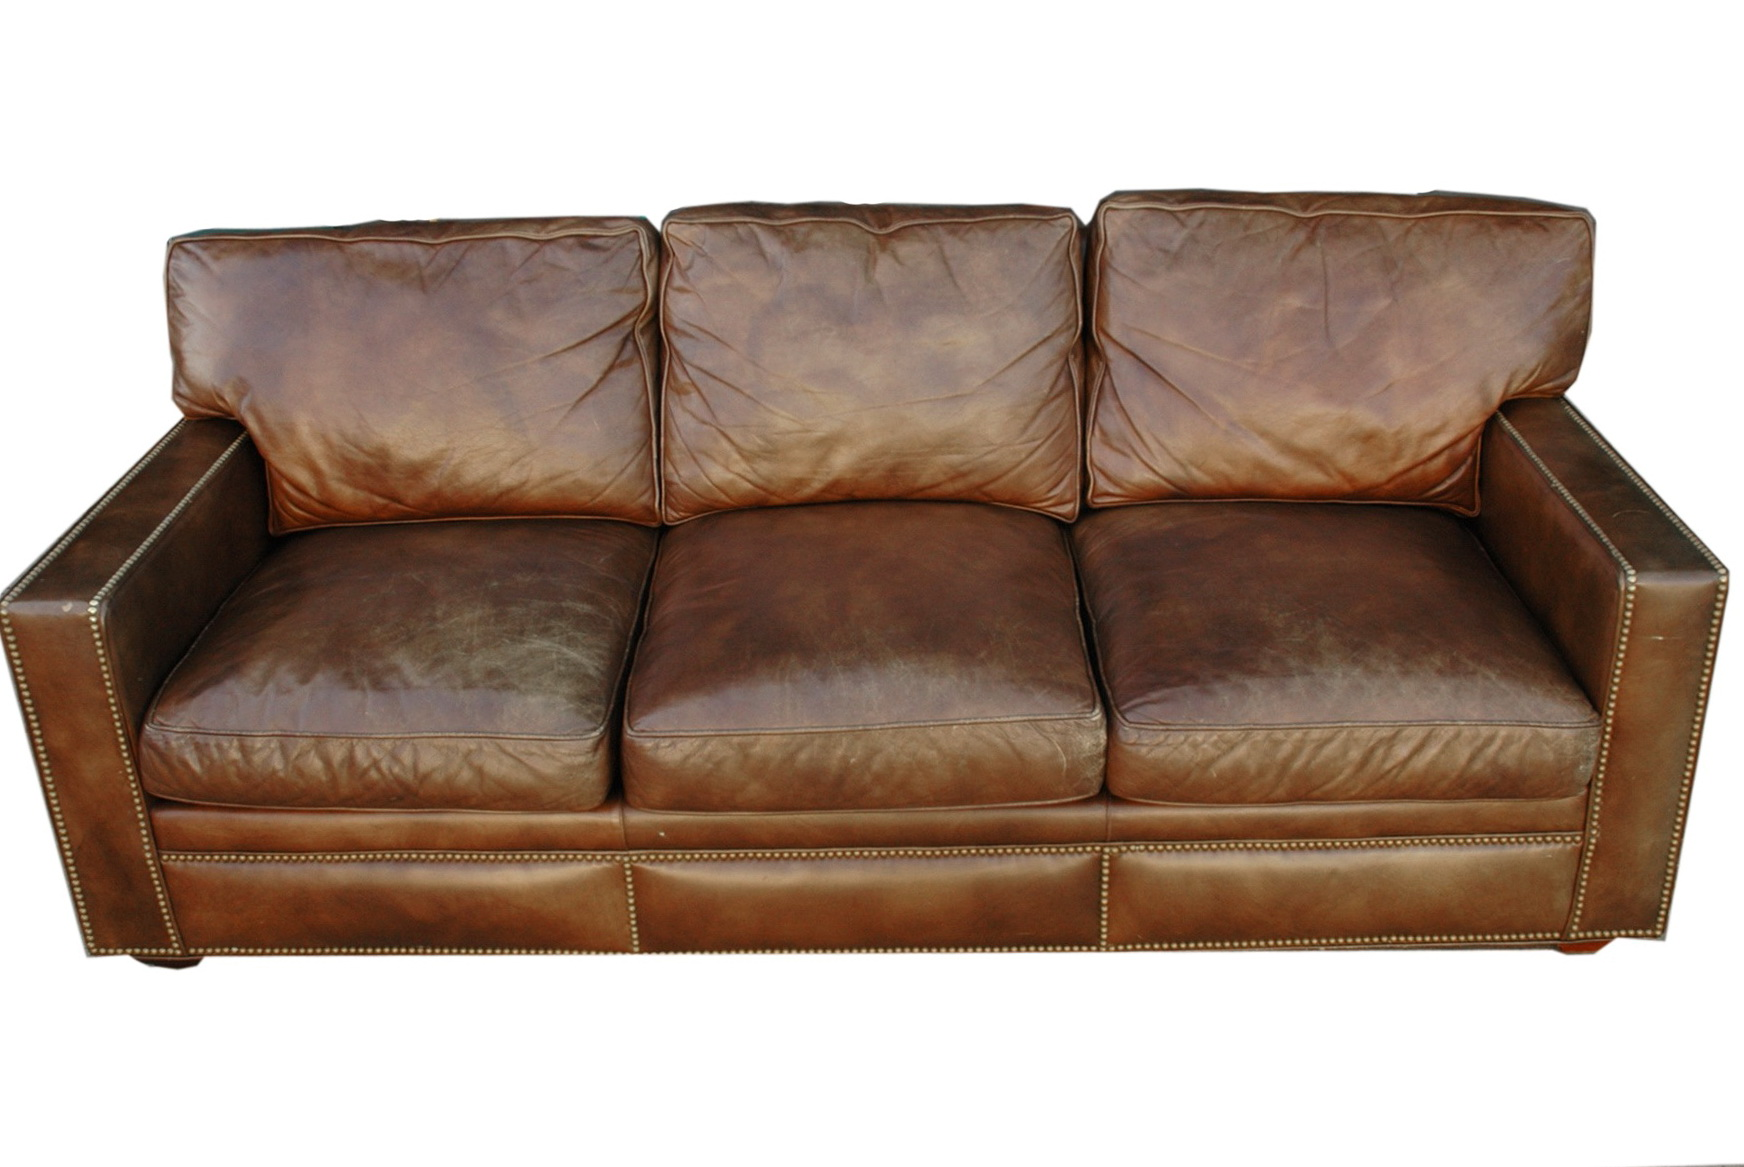 Inspirational Distressed Leather Sofa 69 For Your Sofa Table Ideas With Distressed  Leather Sofa